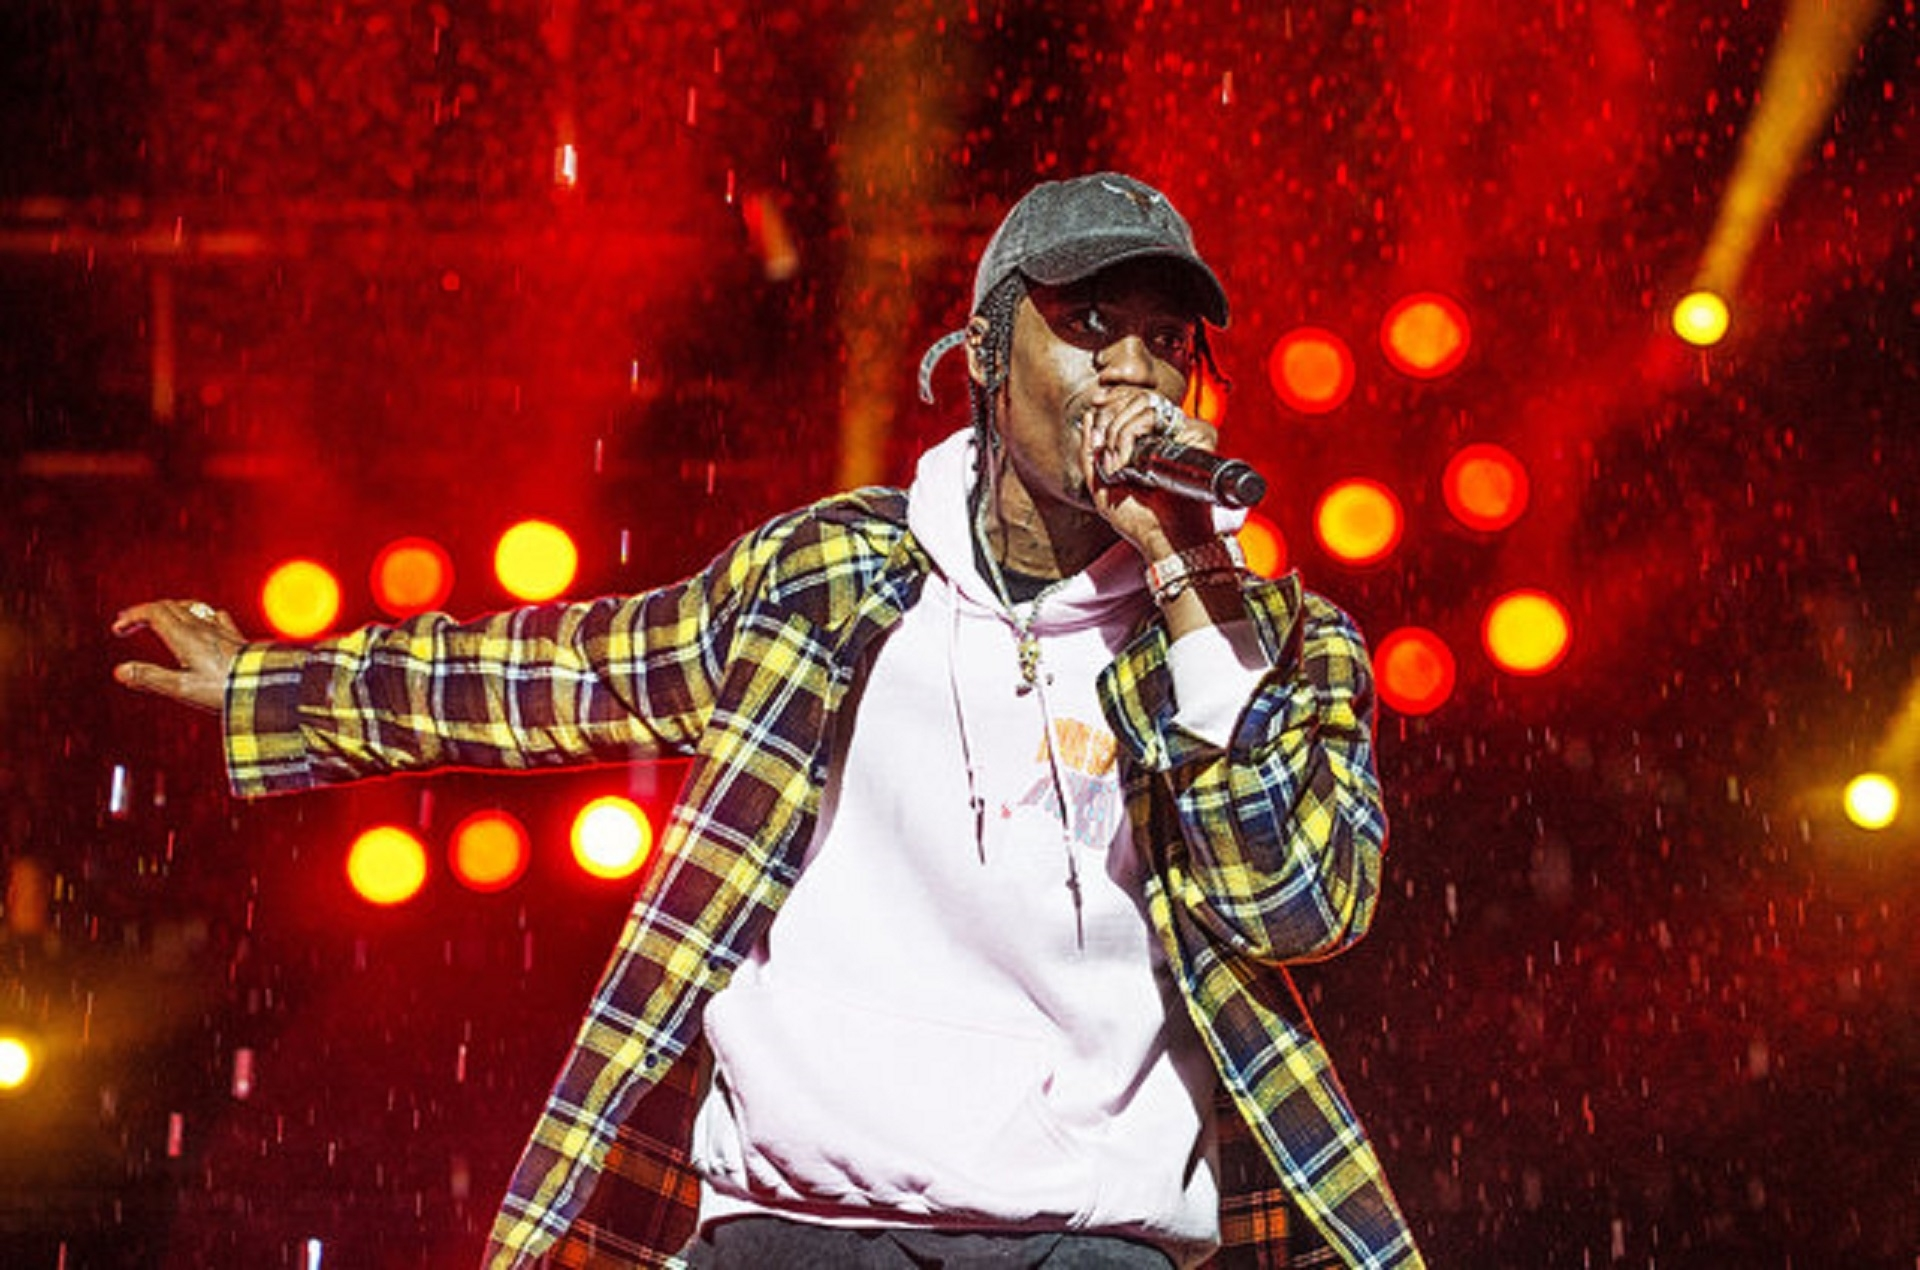 Jay-Z Trying To Talk Travis Scott Out Of Super Bowl Halftime intended for Super Bowl 2019 Travis Scott